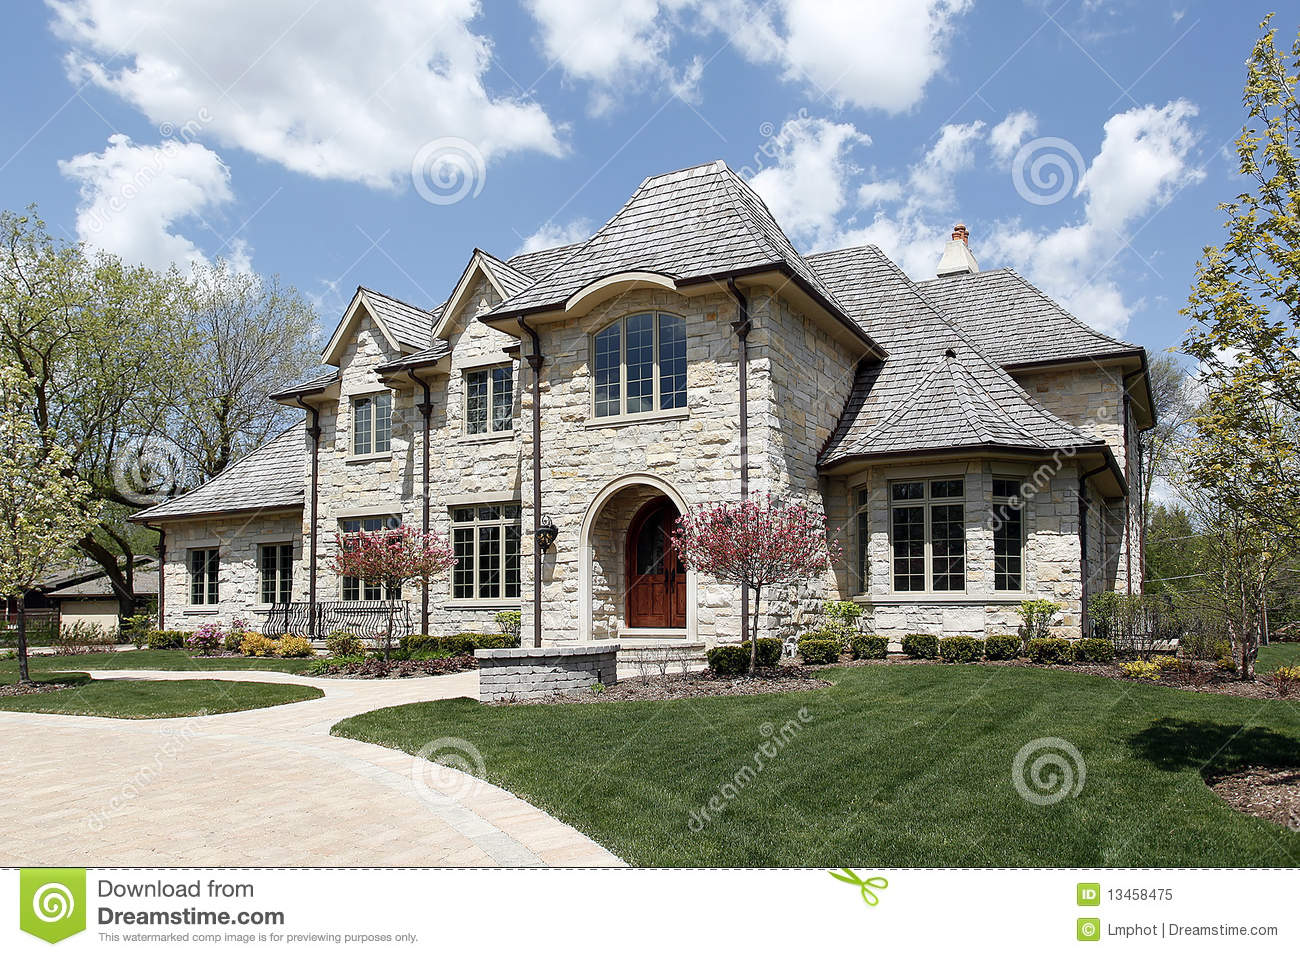 Luxury stone home royalty free stock photo image 13458475 for Free luxury home images